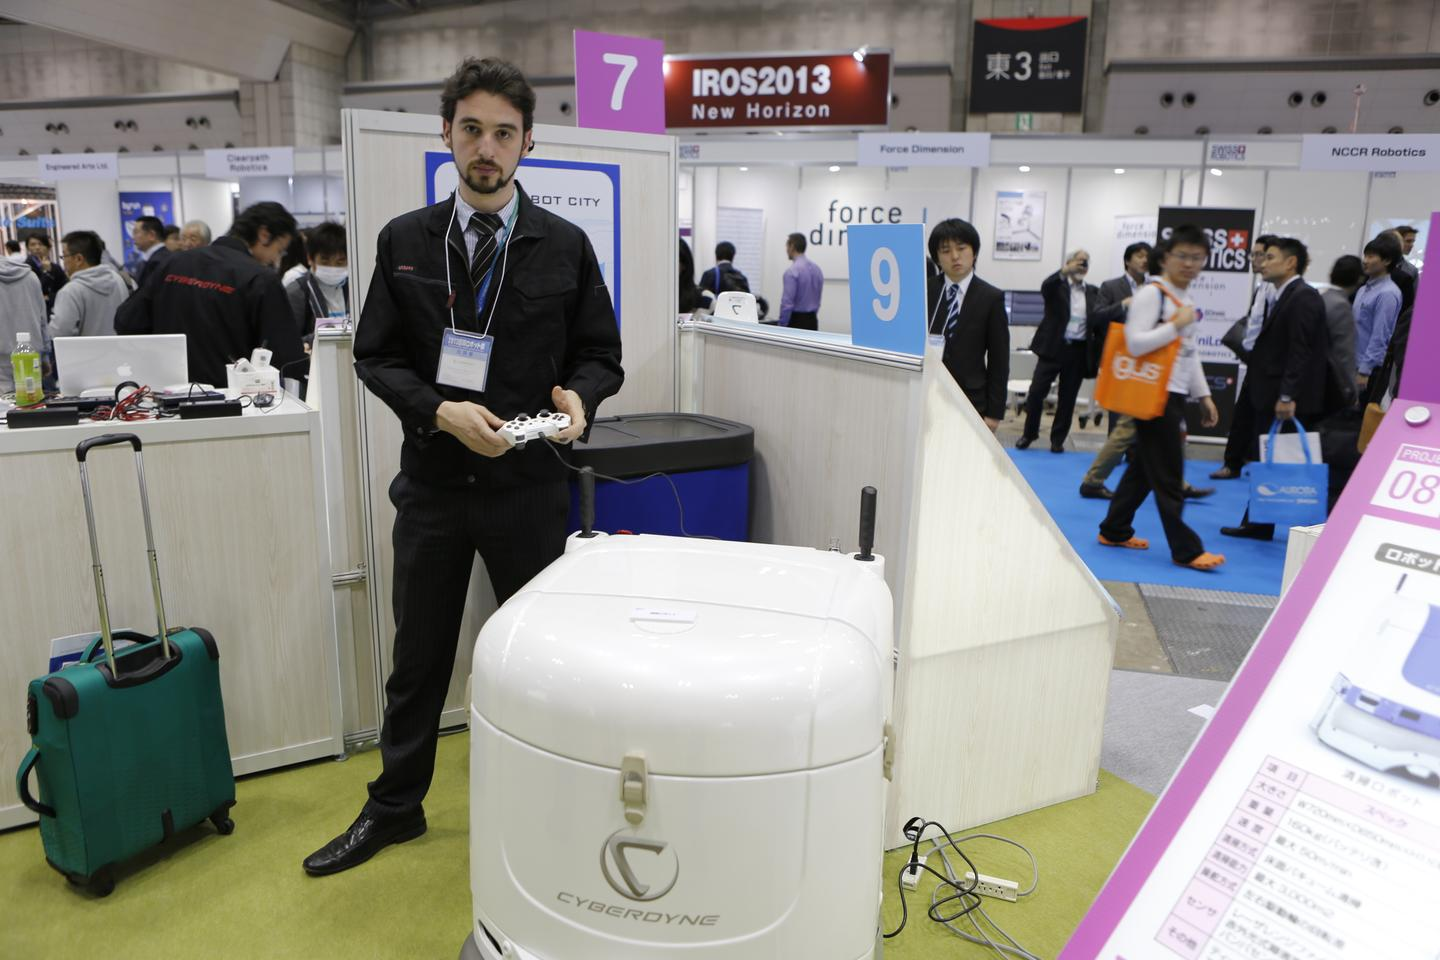 Cyberdyne's new industrial cleaning robot